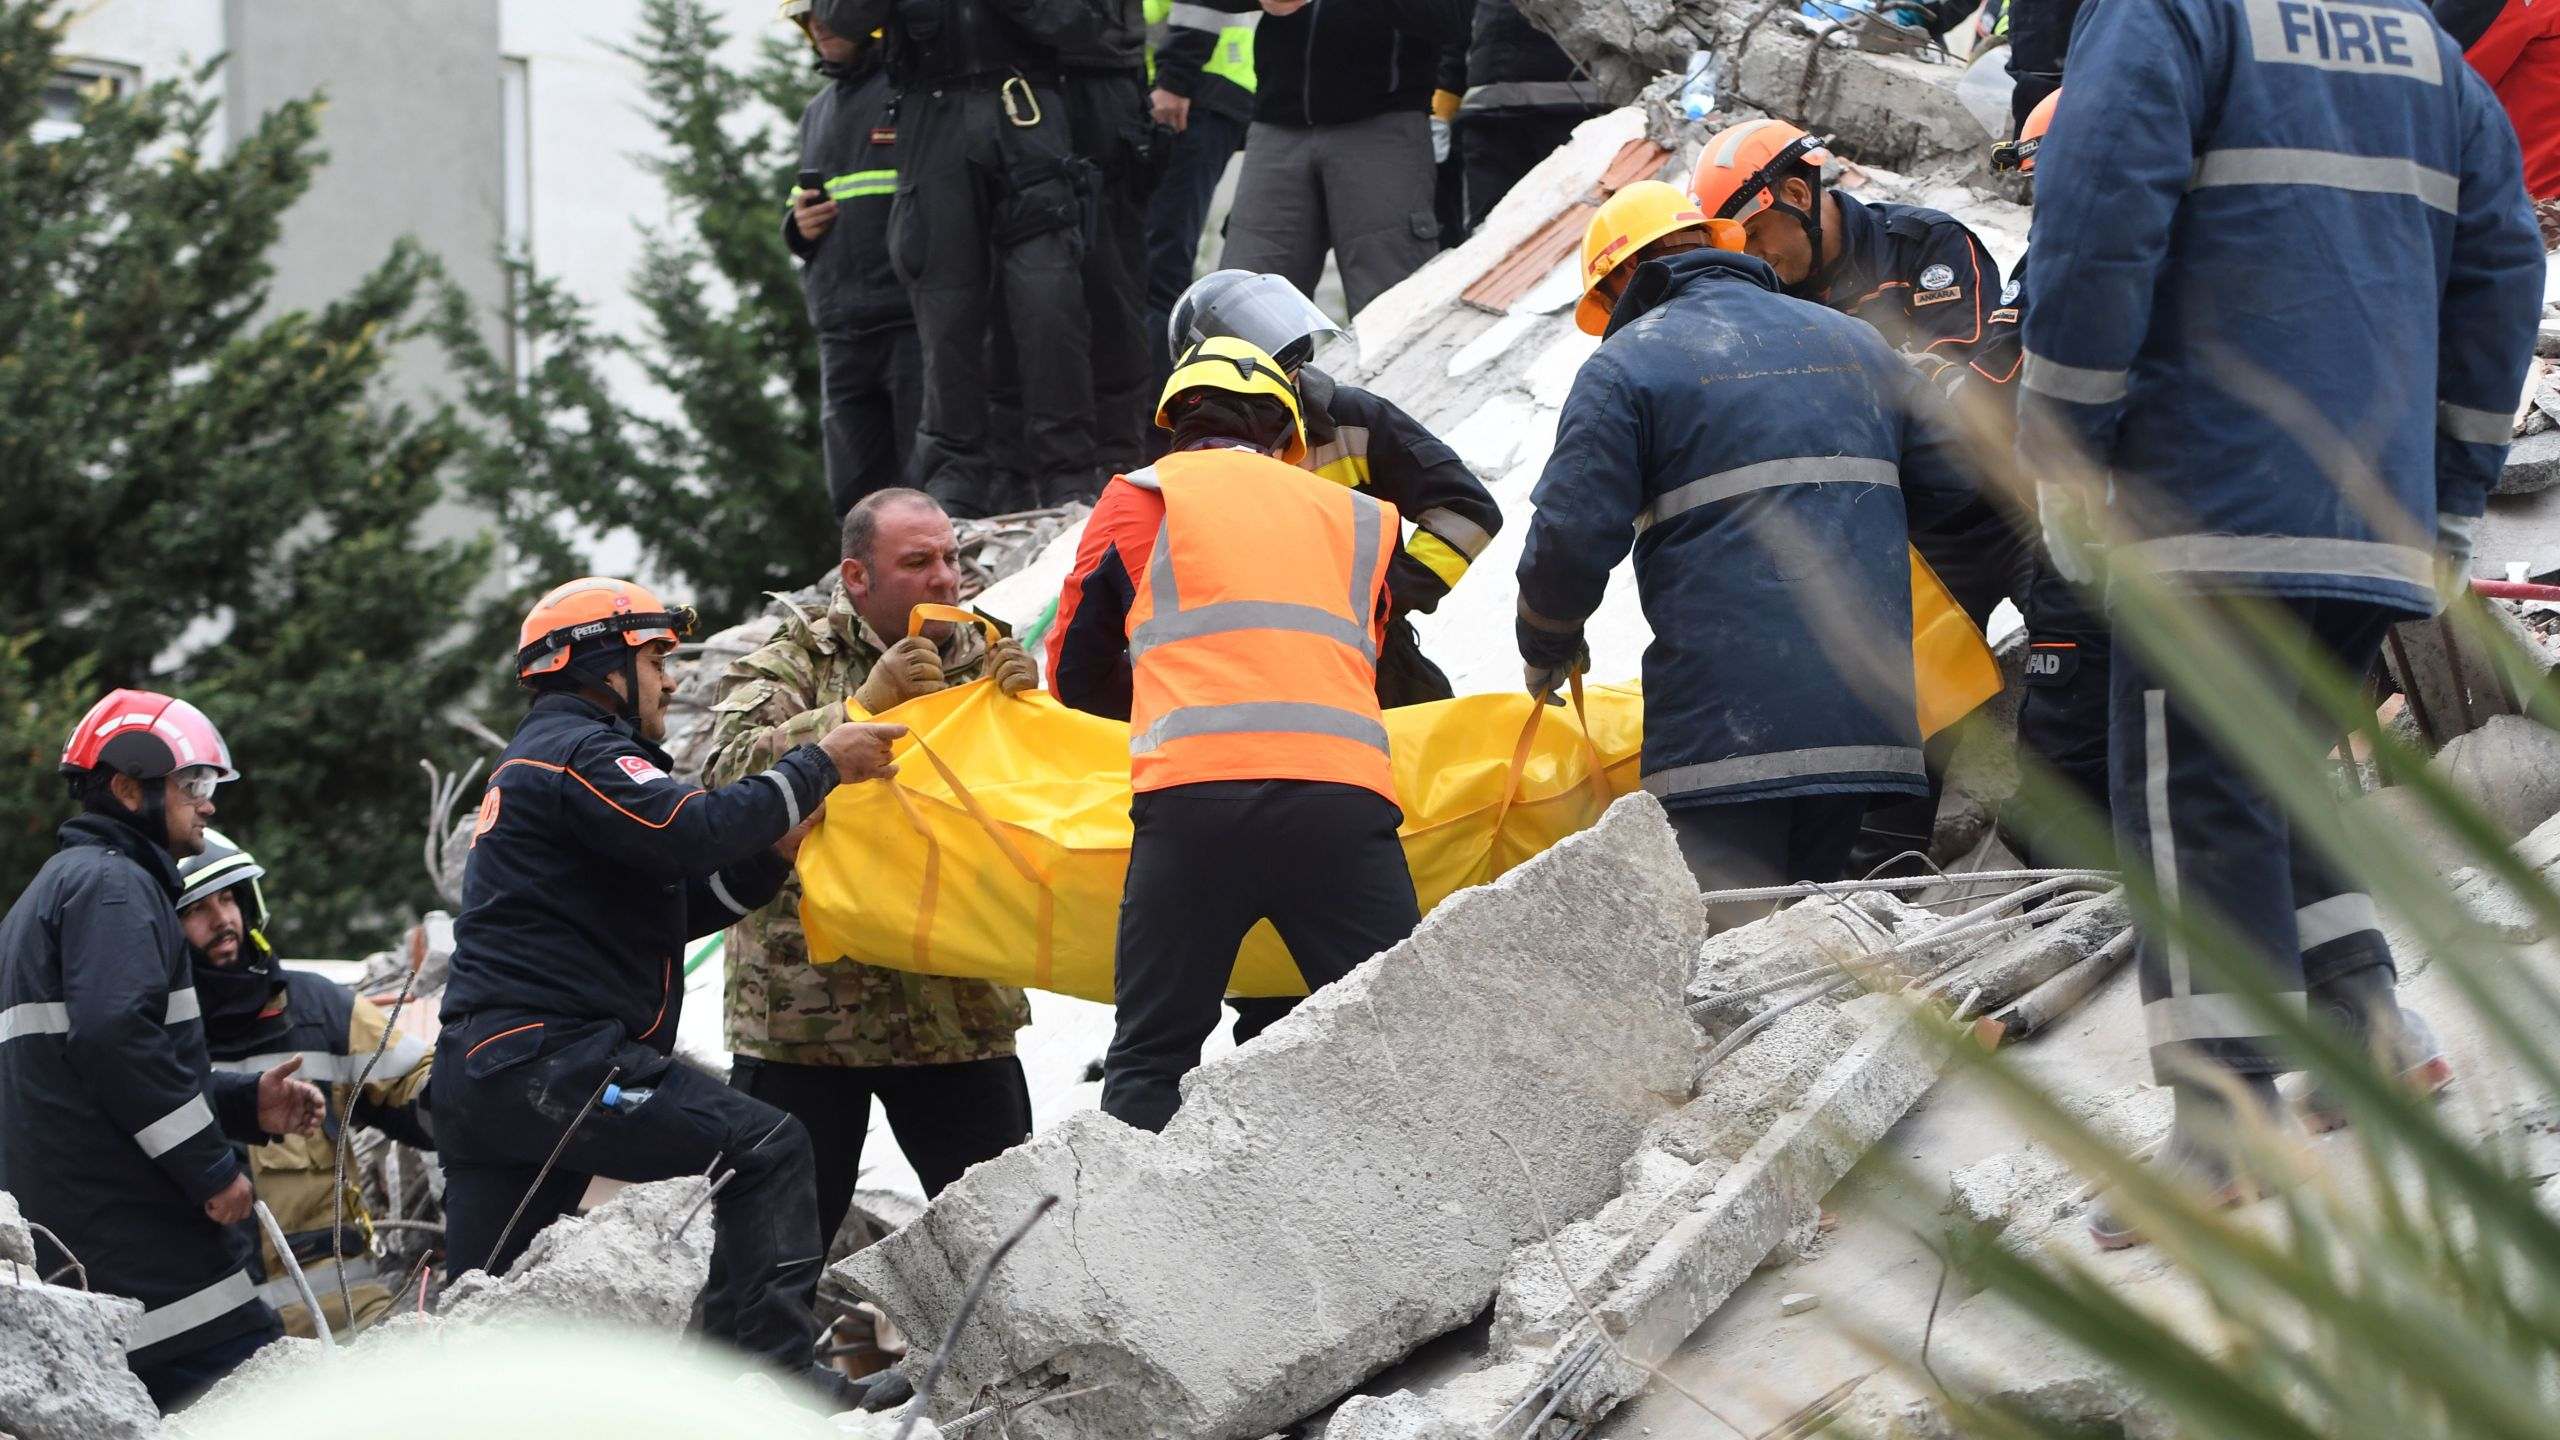 Rescue teams and firefighters carry the body of a victim found under the rubble of a collapsed building in the town of Durres, western Albania on November 28, 2019, after the strongest earthquake in decades hit the country. (Credit: GENT SHKULLAKU/AFP via Getty Images)